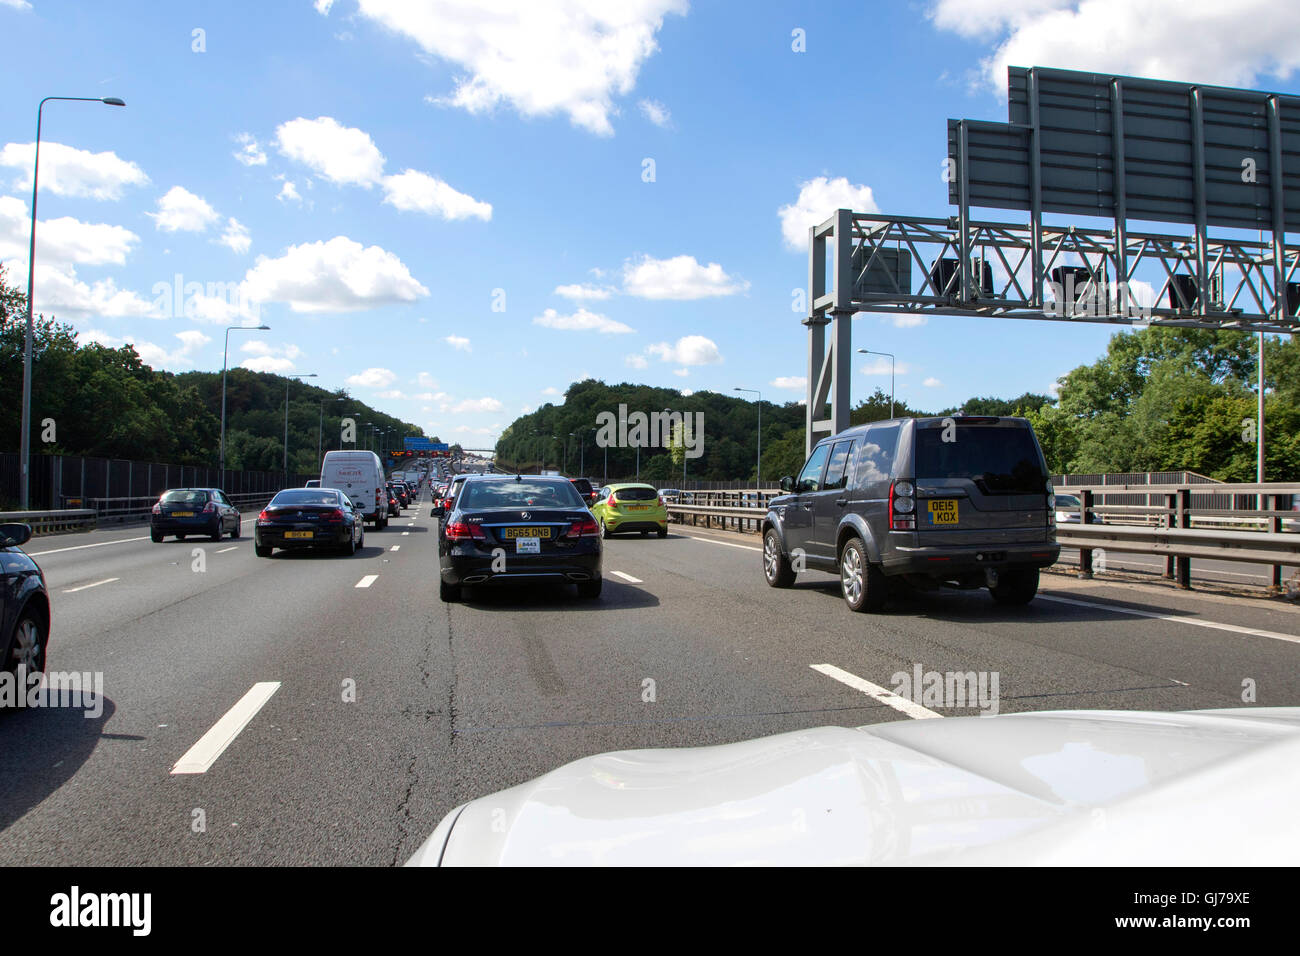 M25 Junction Stock Photos & M25 Junction Stock Images - Page